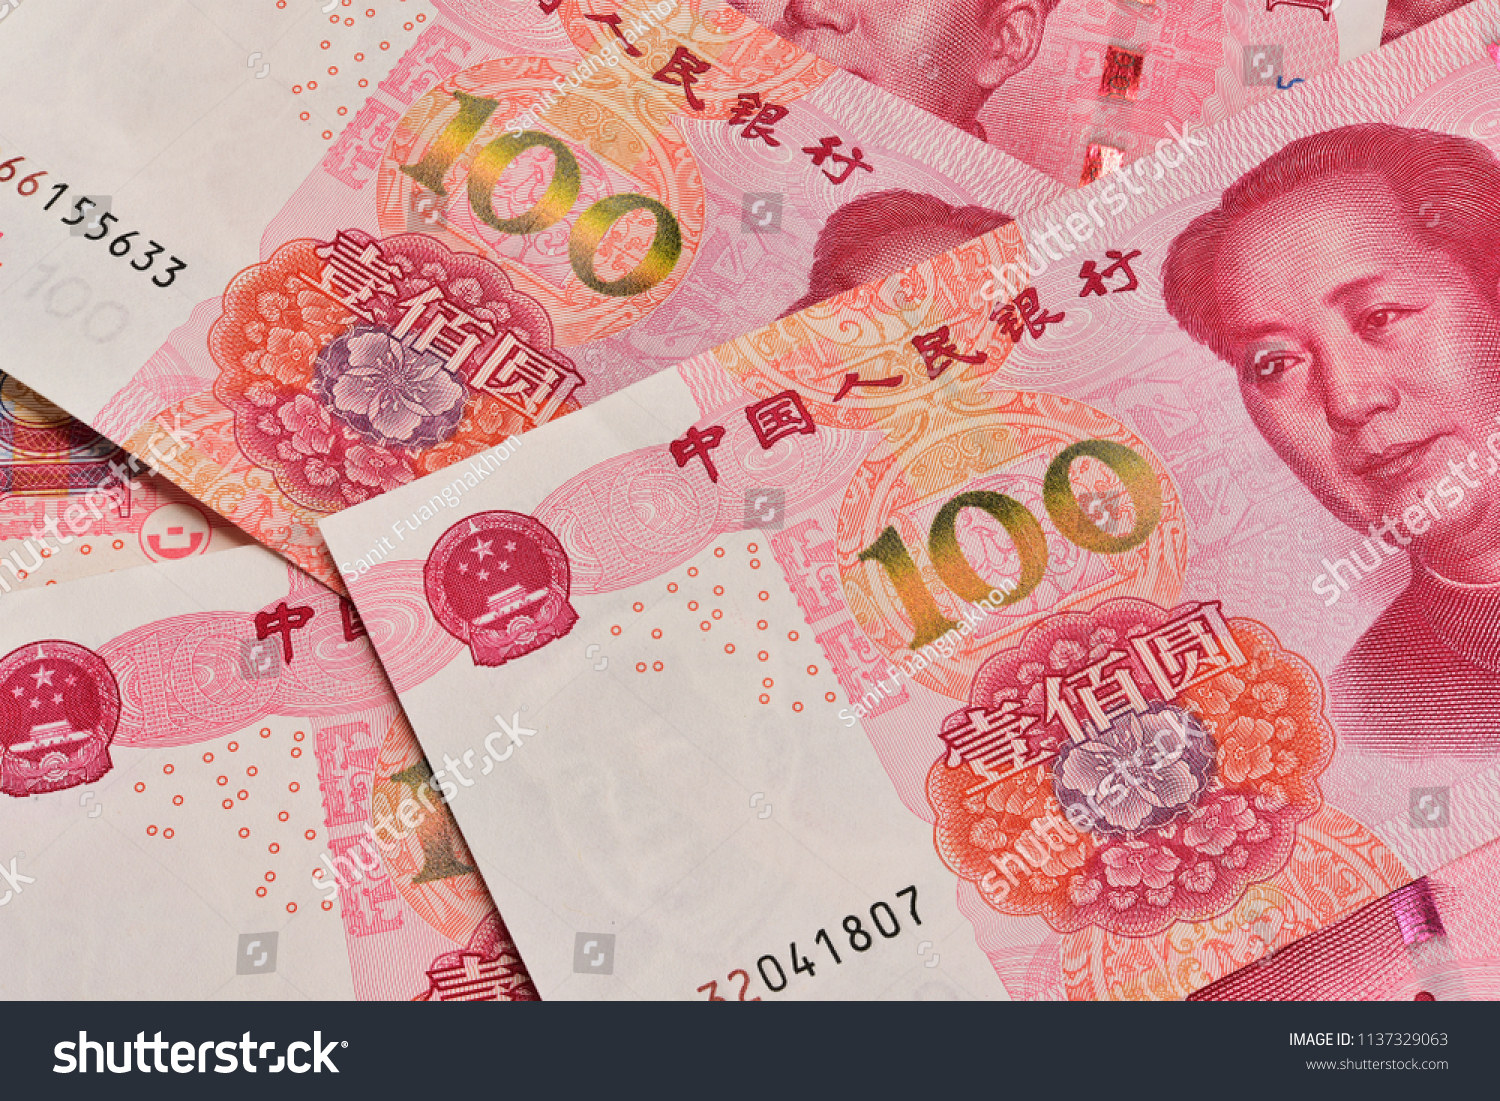 Mao Face 100 Yoan Chinese Money Stock Photo Edit Now 1137329063 Baby Music Cellular Phone From Bank Note